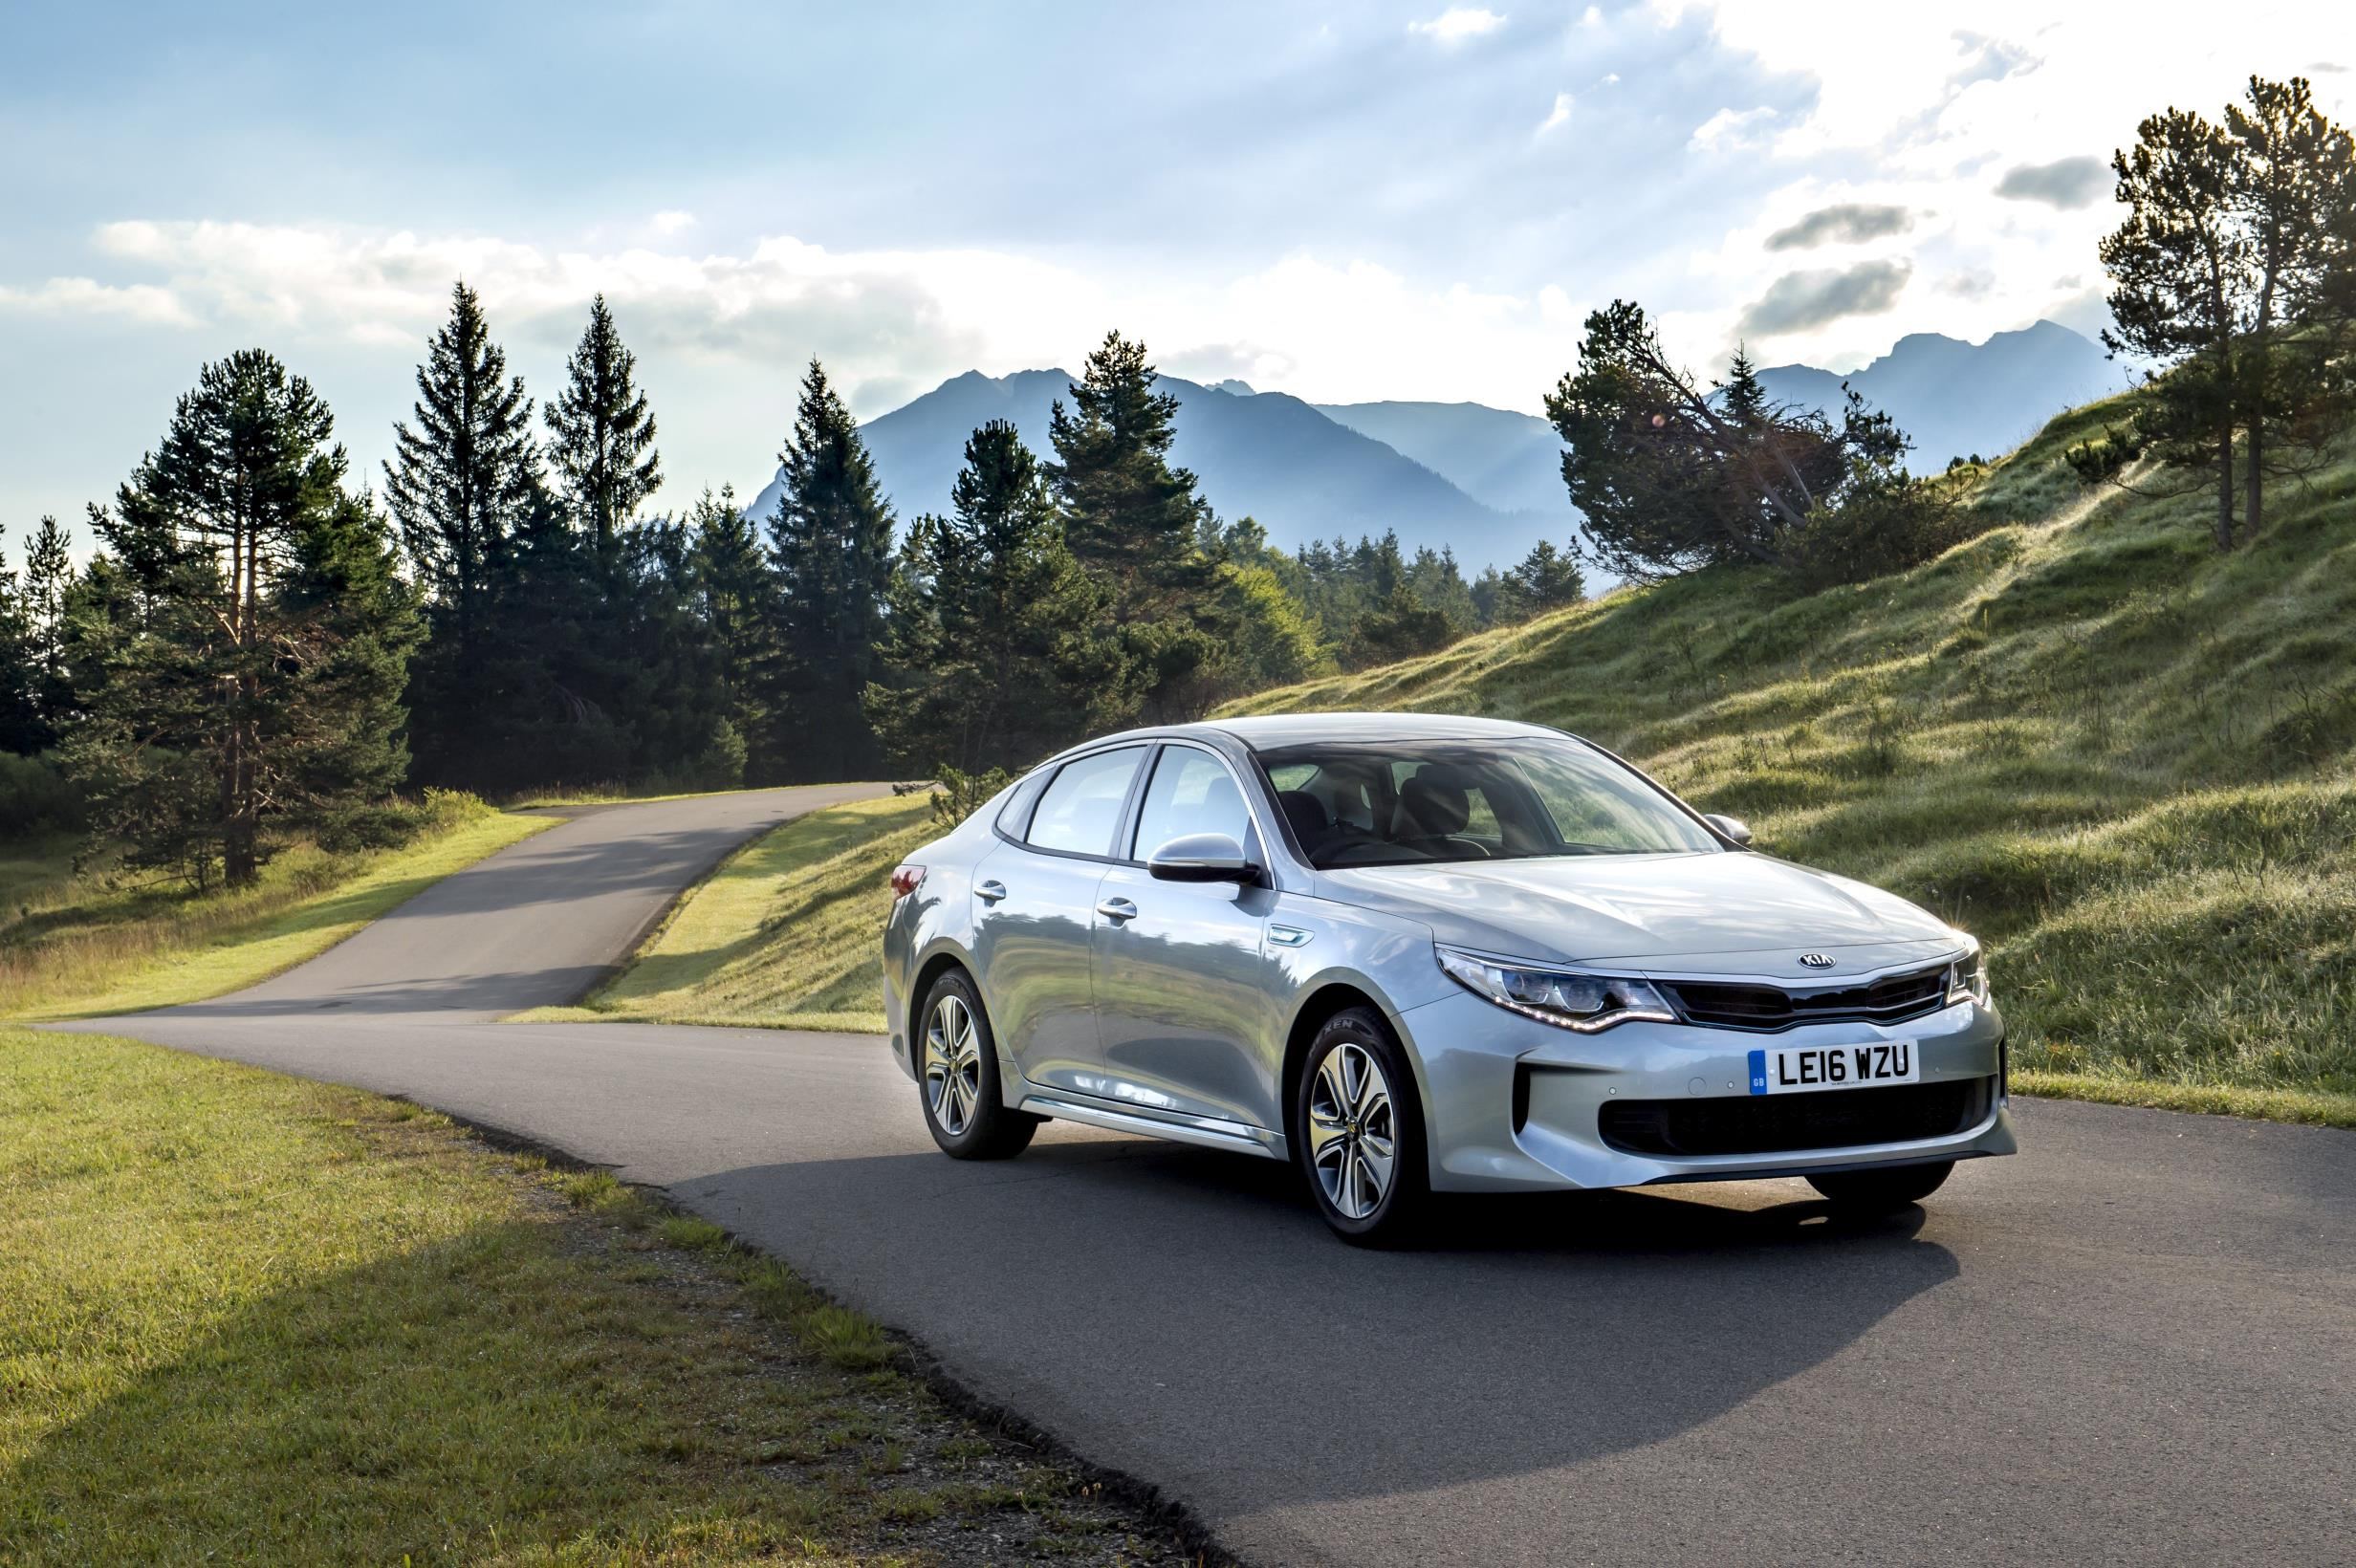 kia uk prices optima sportswagon optima plug in hybrid autoevolution. Black Bedroom Furniture Sets. Home Design Ideas